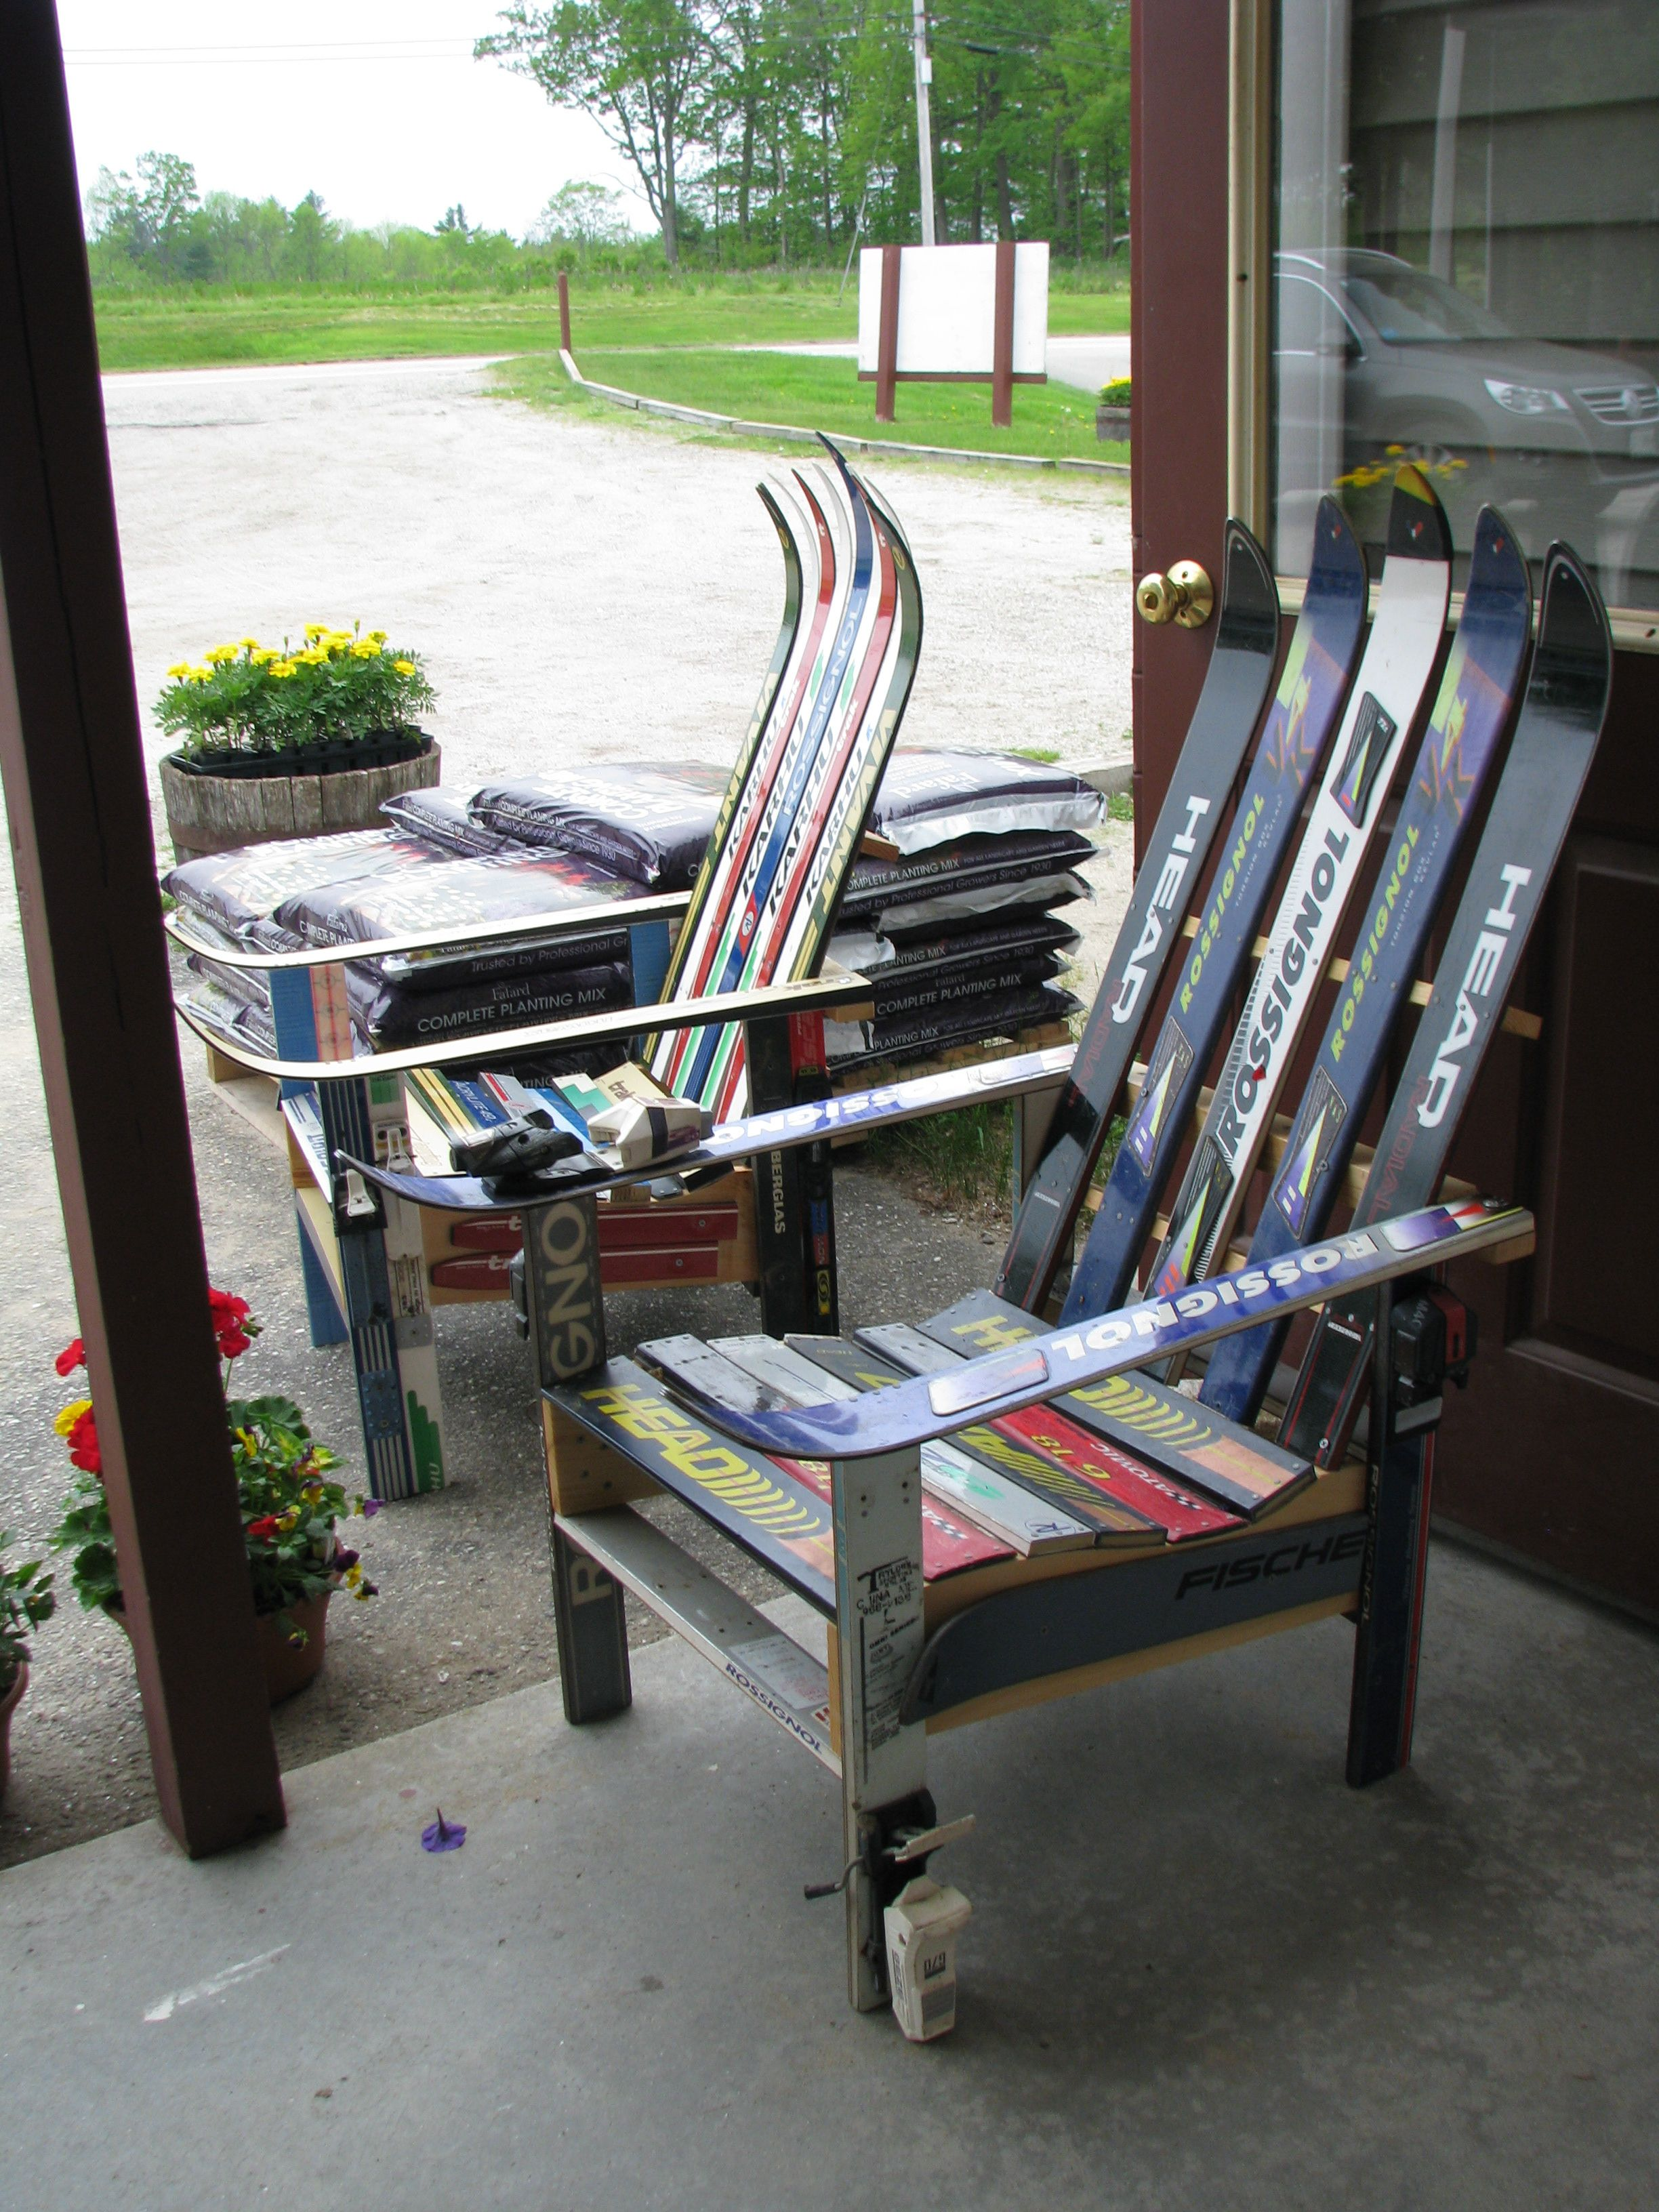 Upcycled ski chairs in Oxford, Maine farm stand. Maine